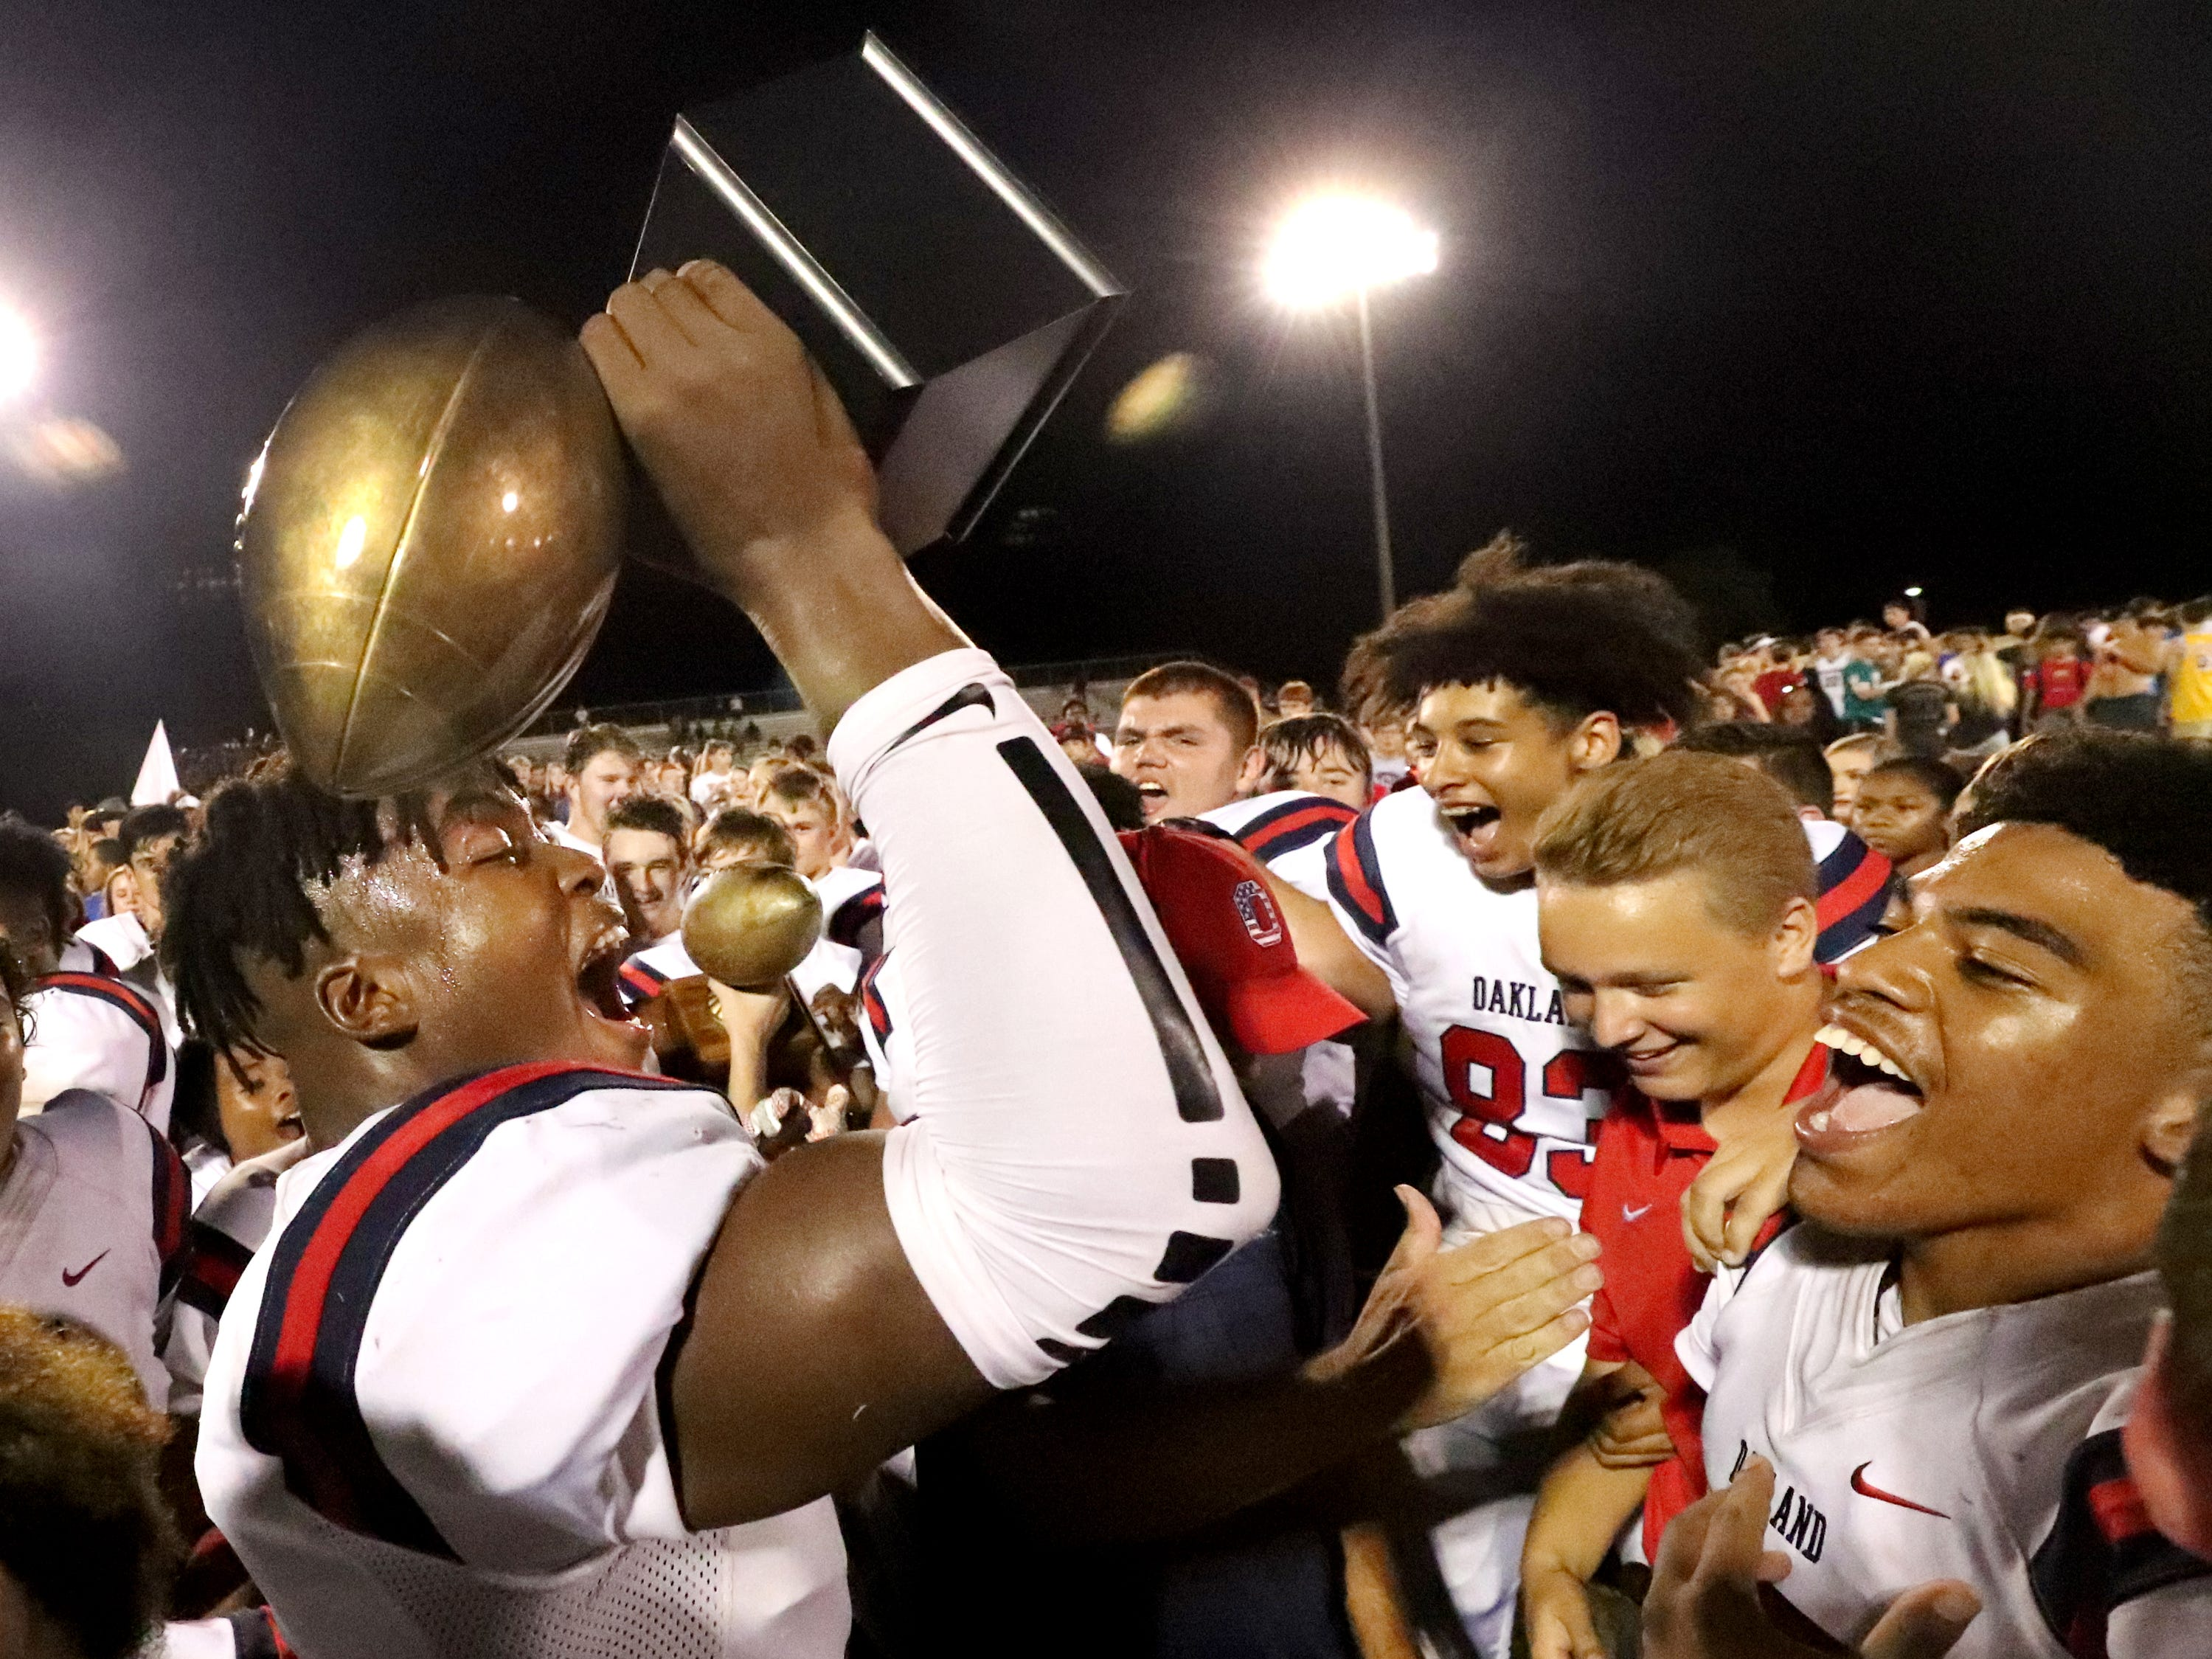 Oakland's Tekoy Randolph (9) celebrates the teams win with the Friday Night Rivals Championship trophy after beating Riverdale 49-6 during the Battle of the Boro on Friday, Sept. 14, 2018.